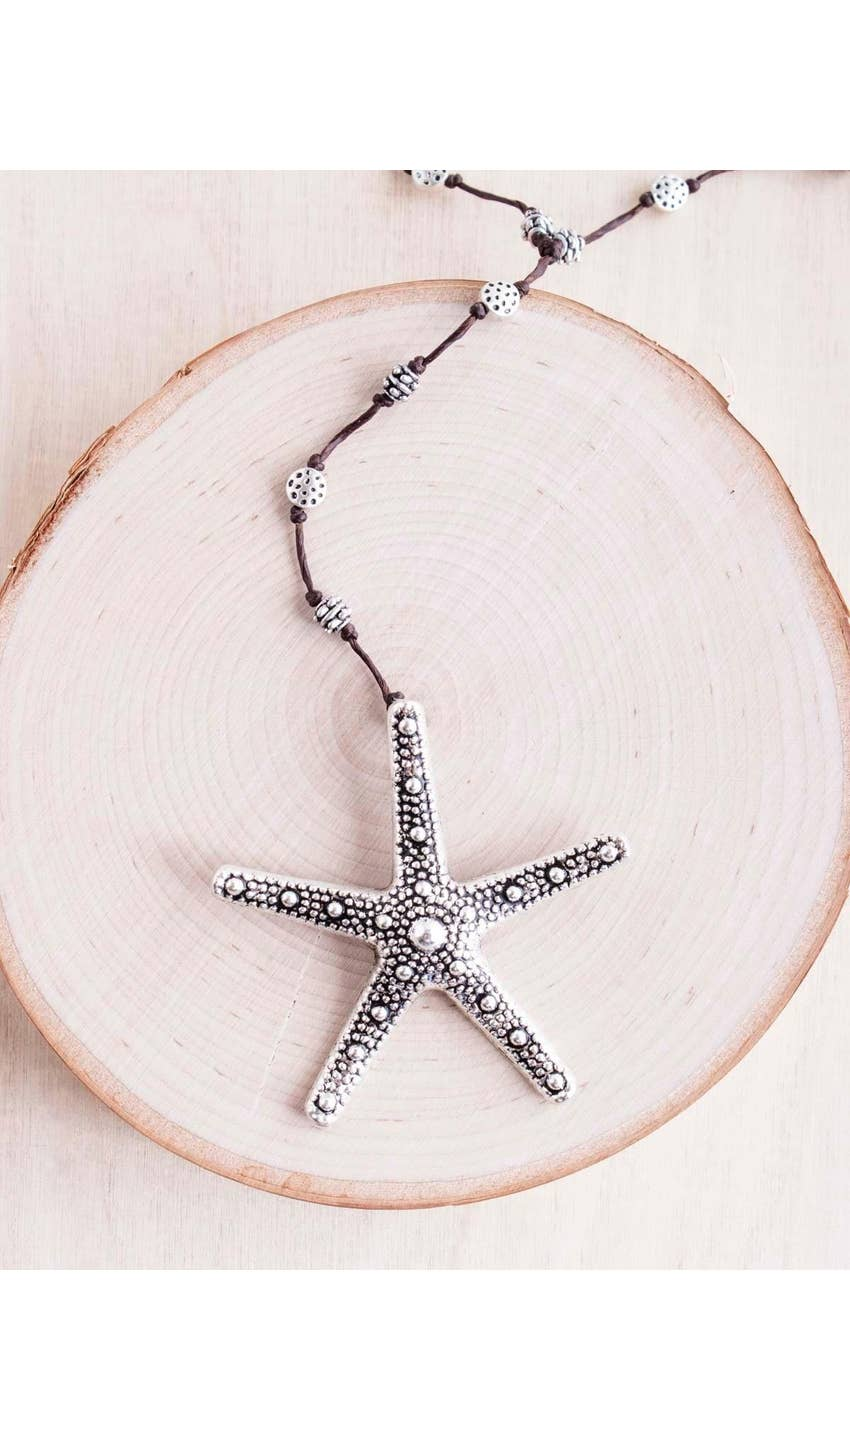 Silver Bumpy Starfish Necklace